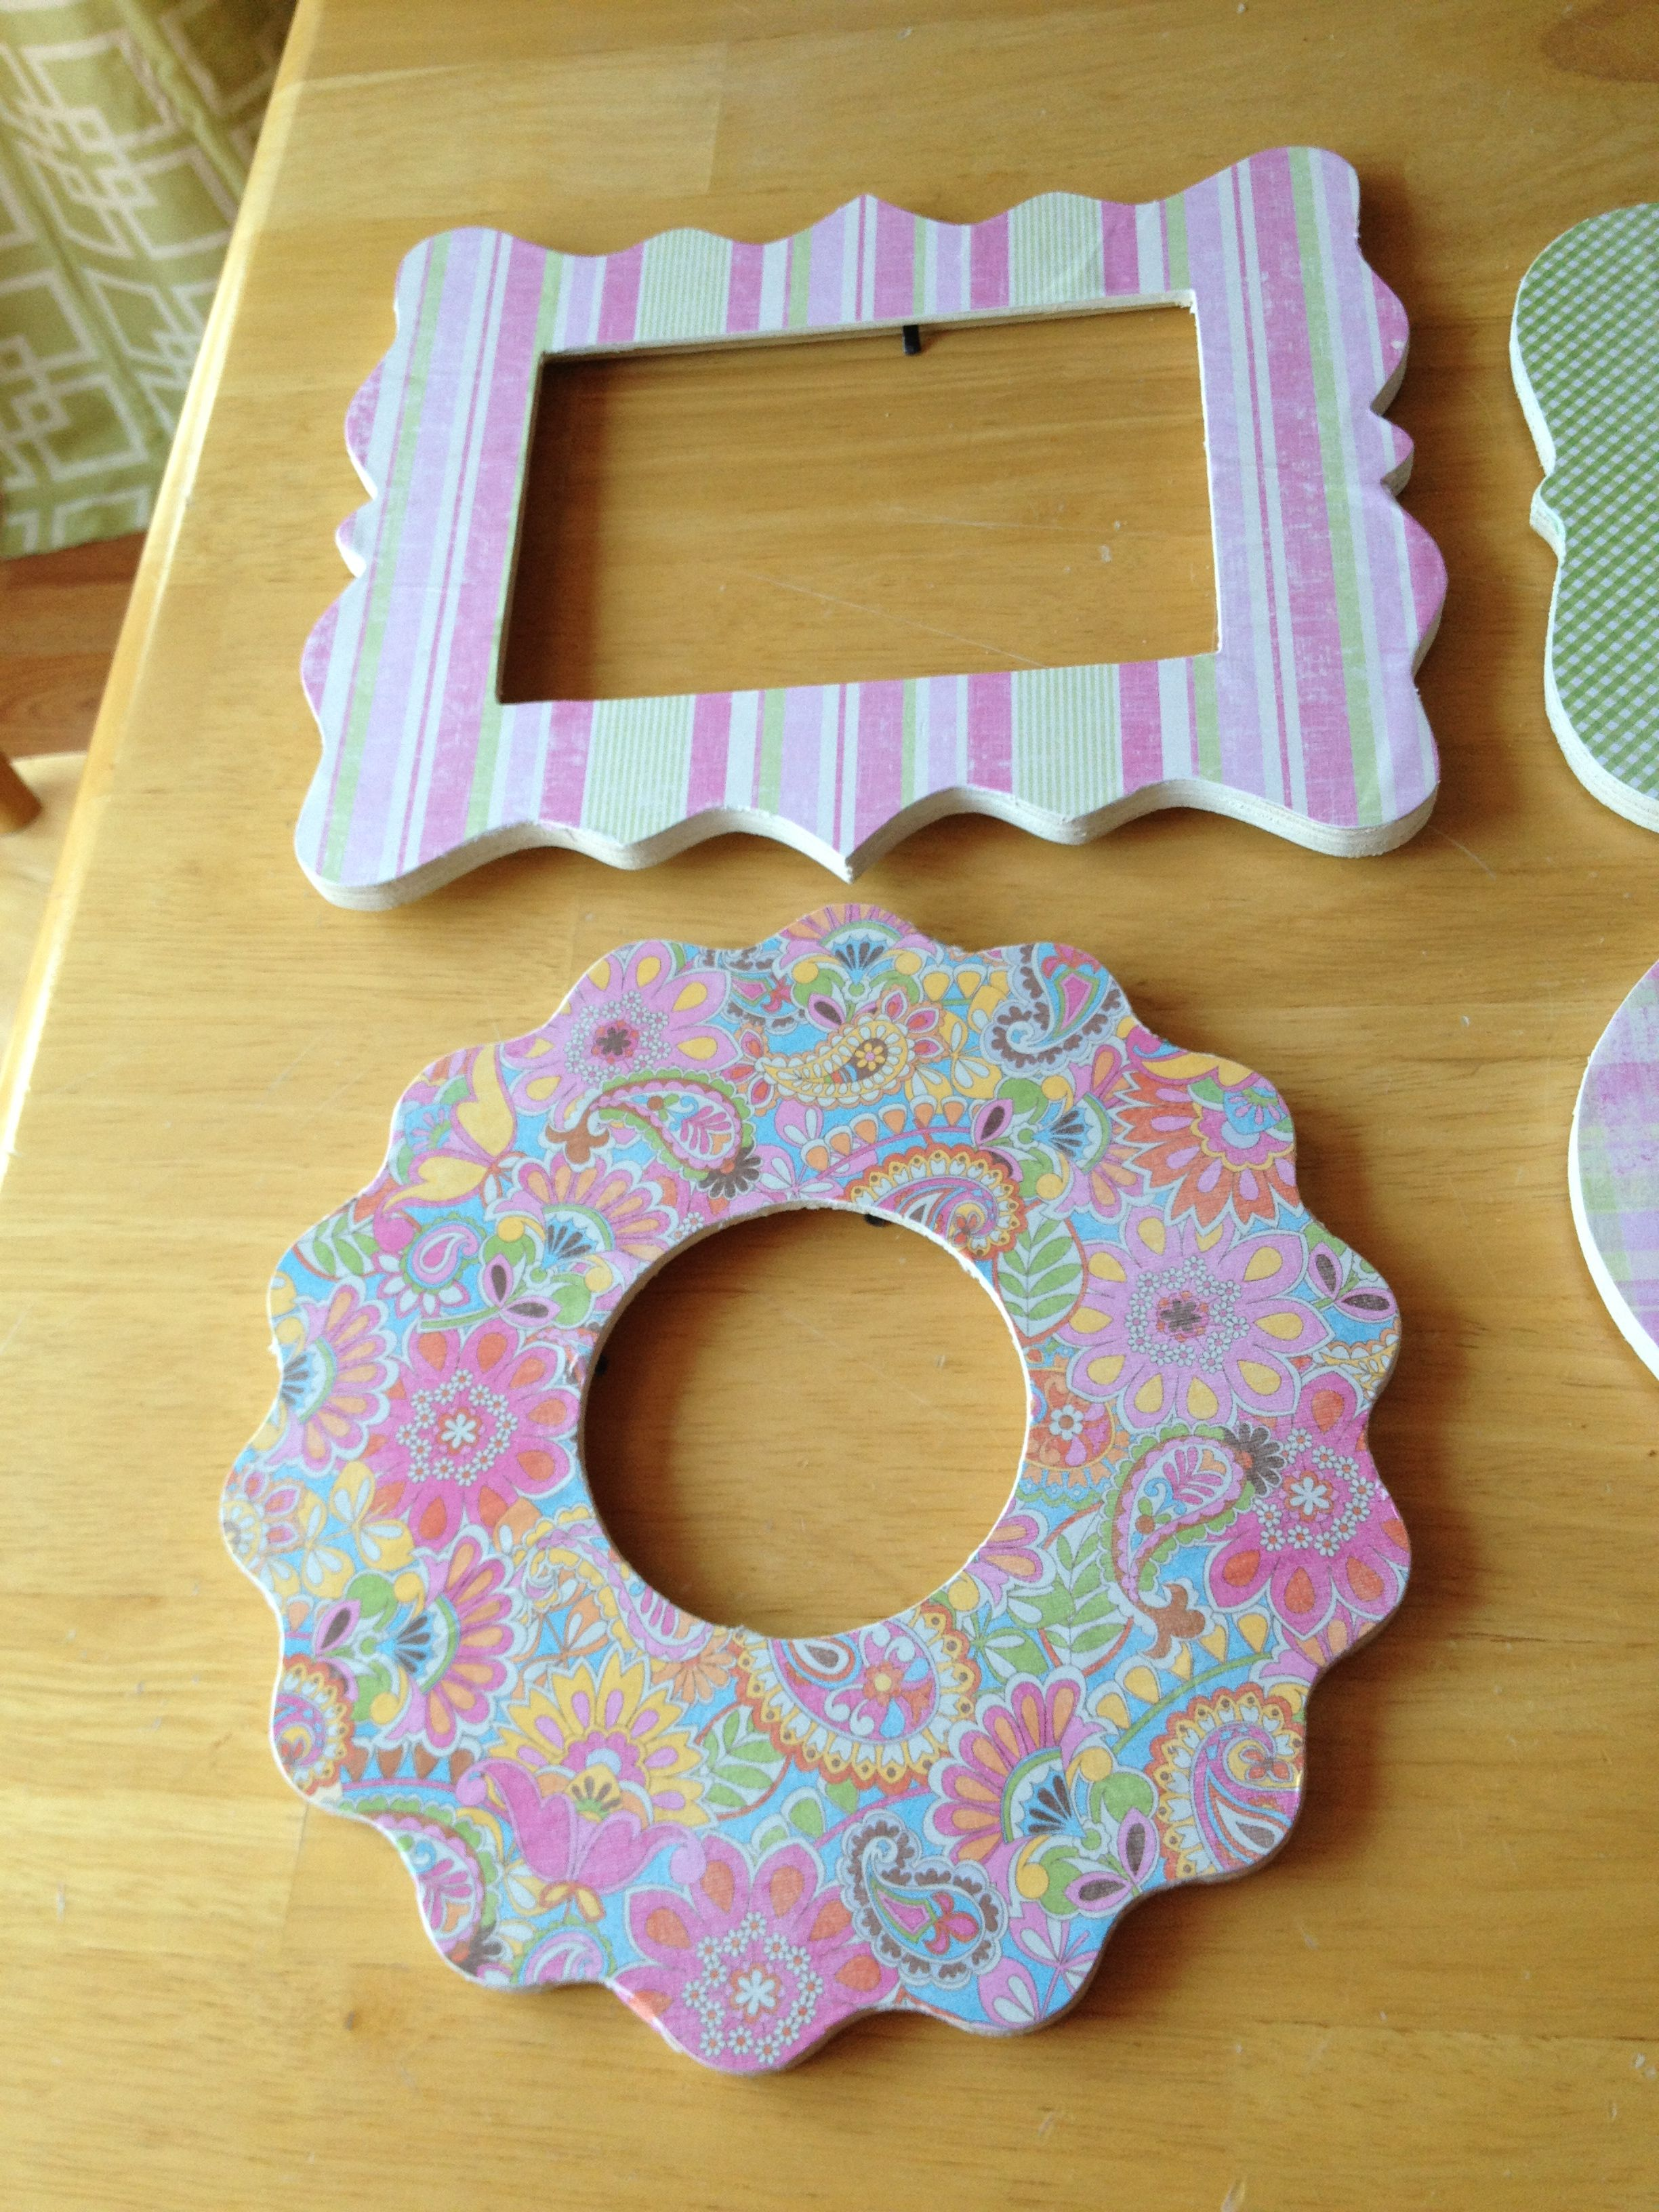 Inexpensive frames from Michael's covered in scrapbook paper... Super easy and cute.